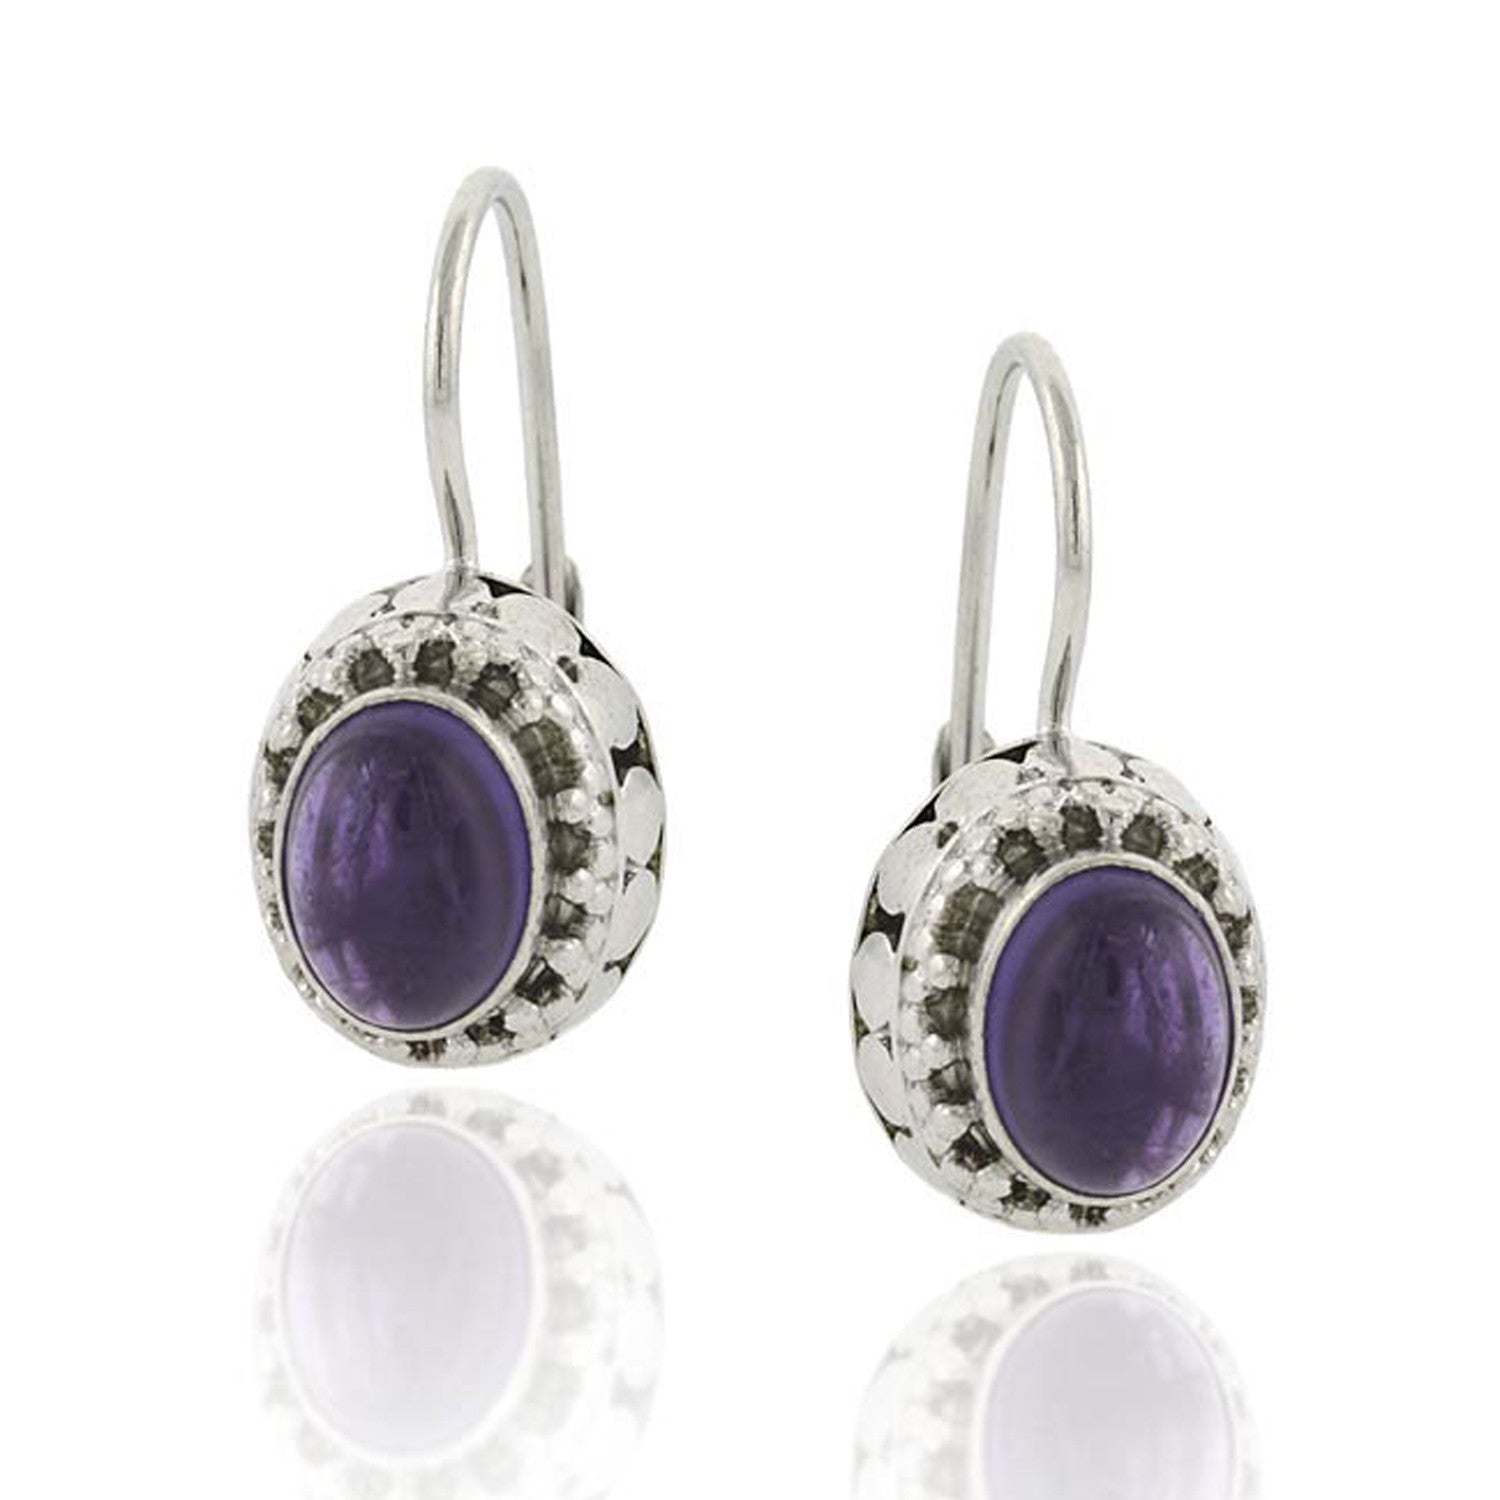 Sterling Silver Gemstone Accented Leverback Oval Earrings - Amethyst